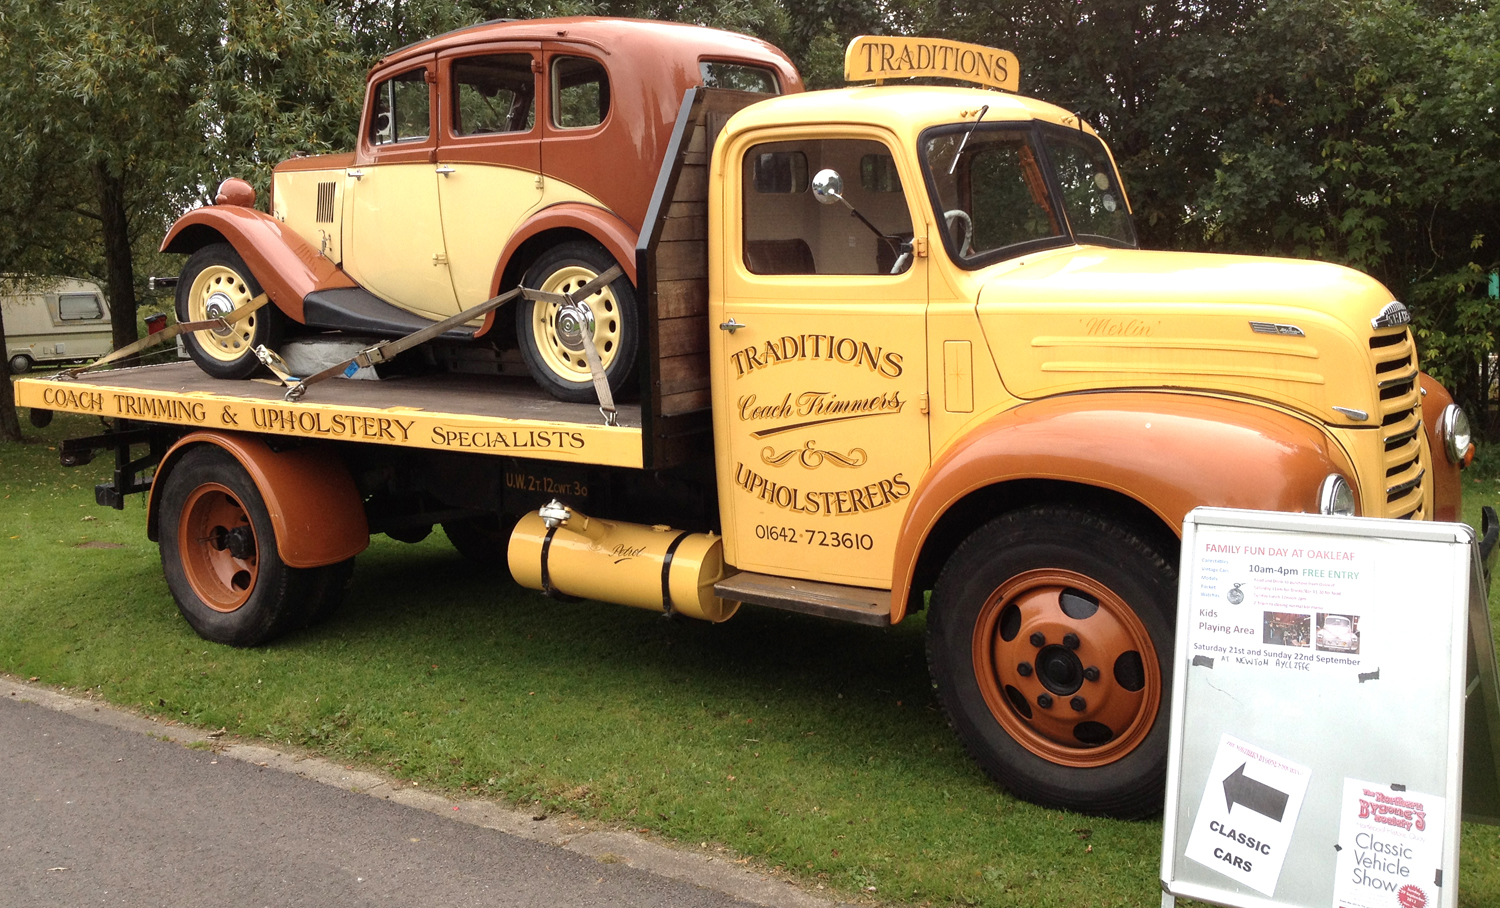 Aycliffe Vintage & Classic Vehicle Show